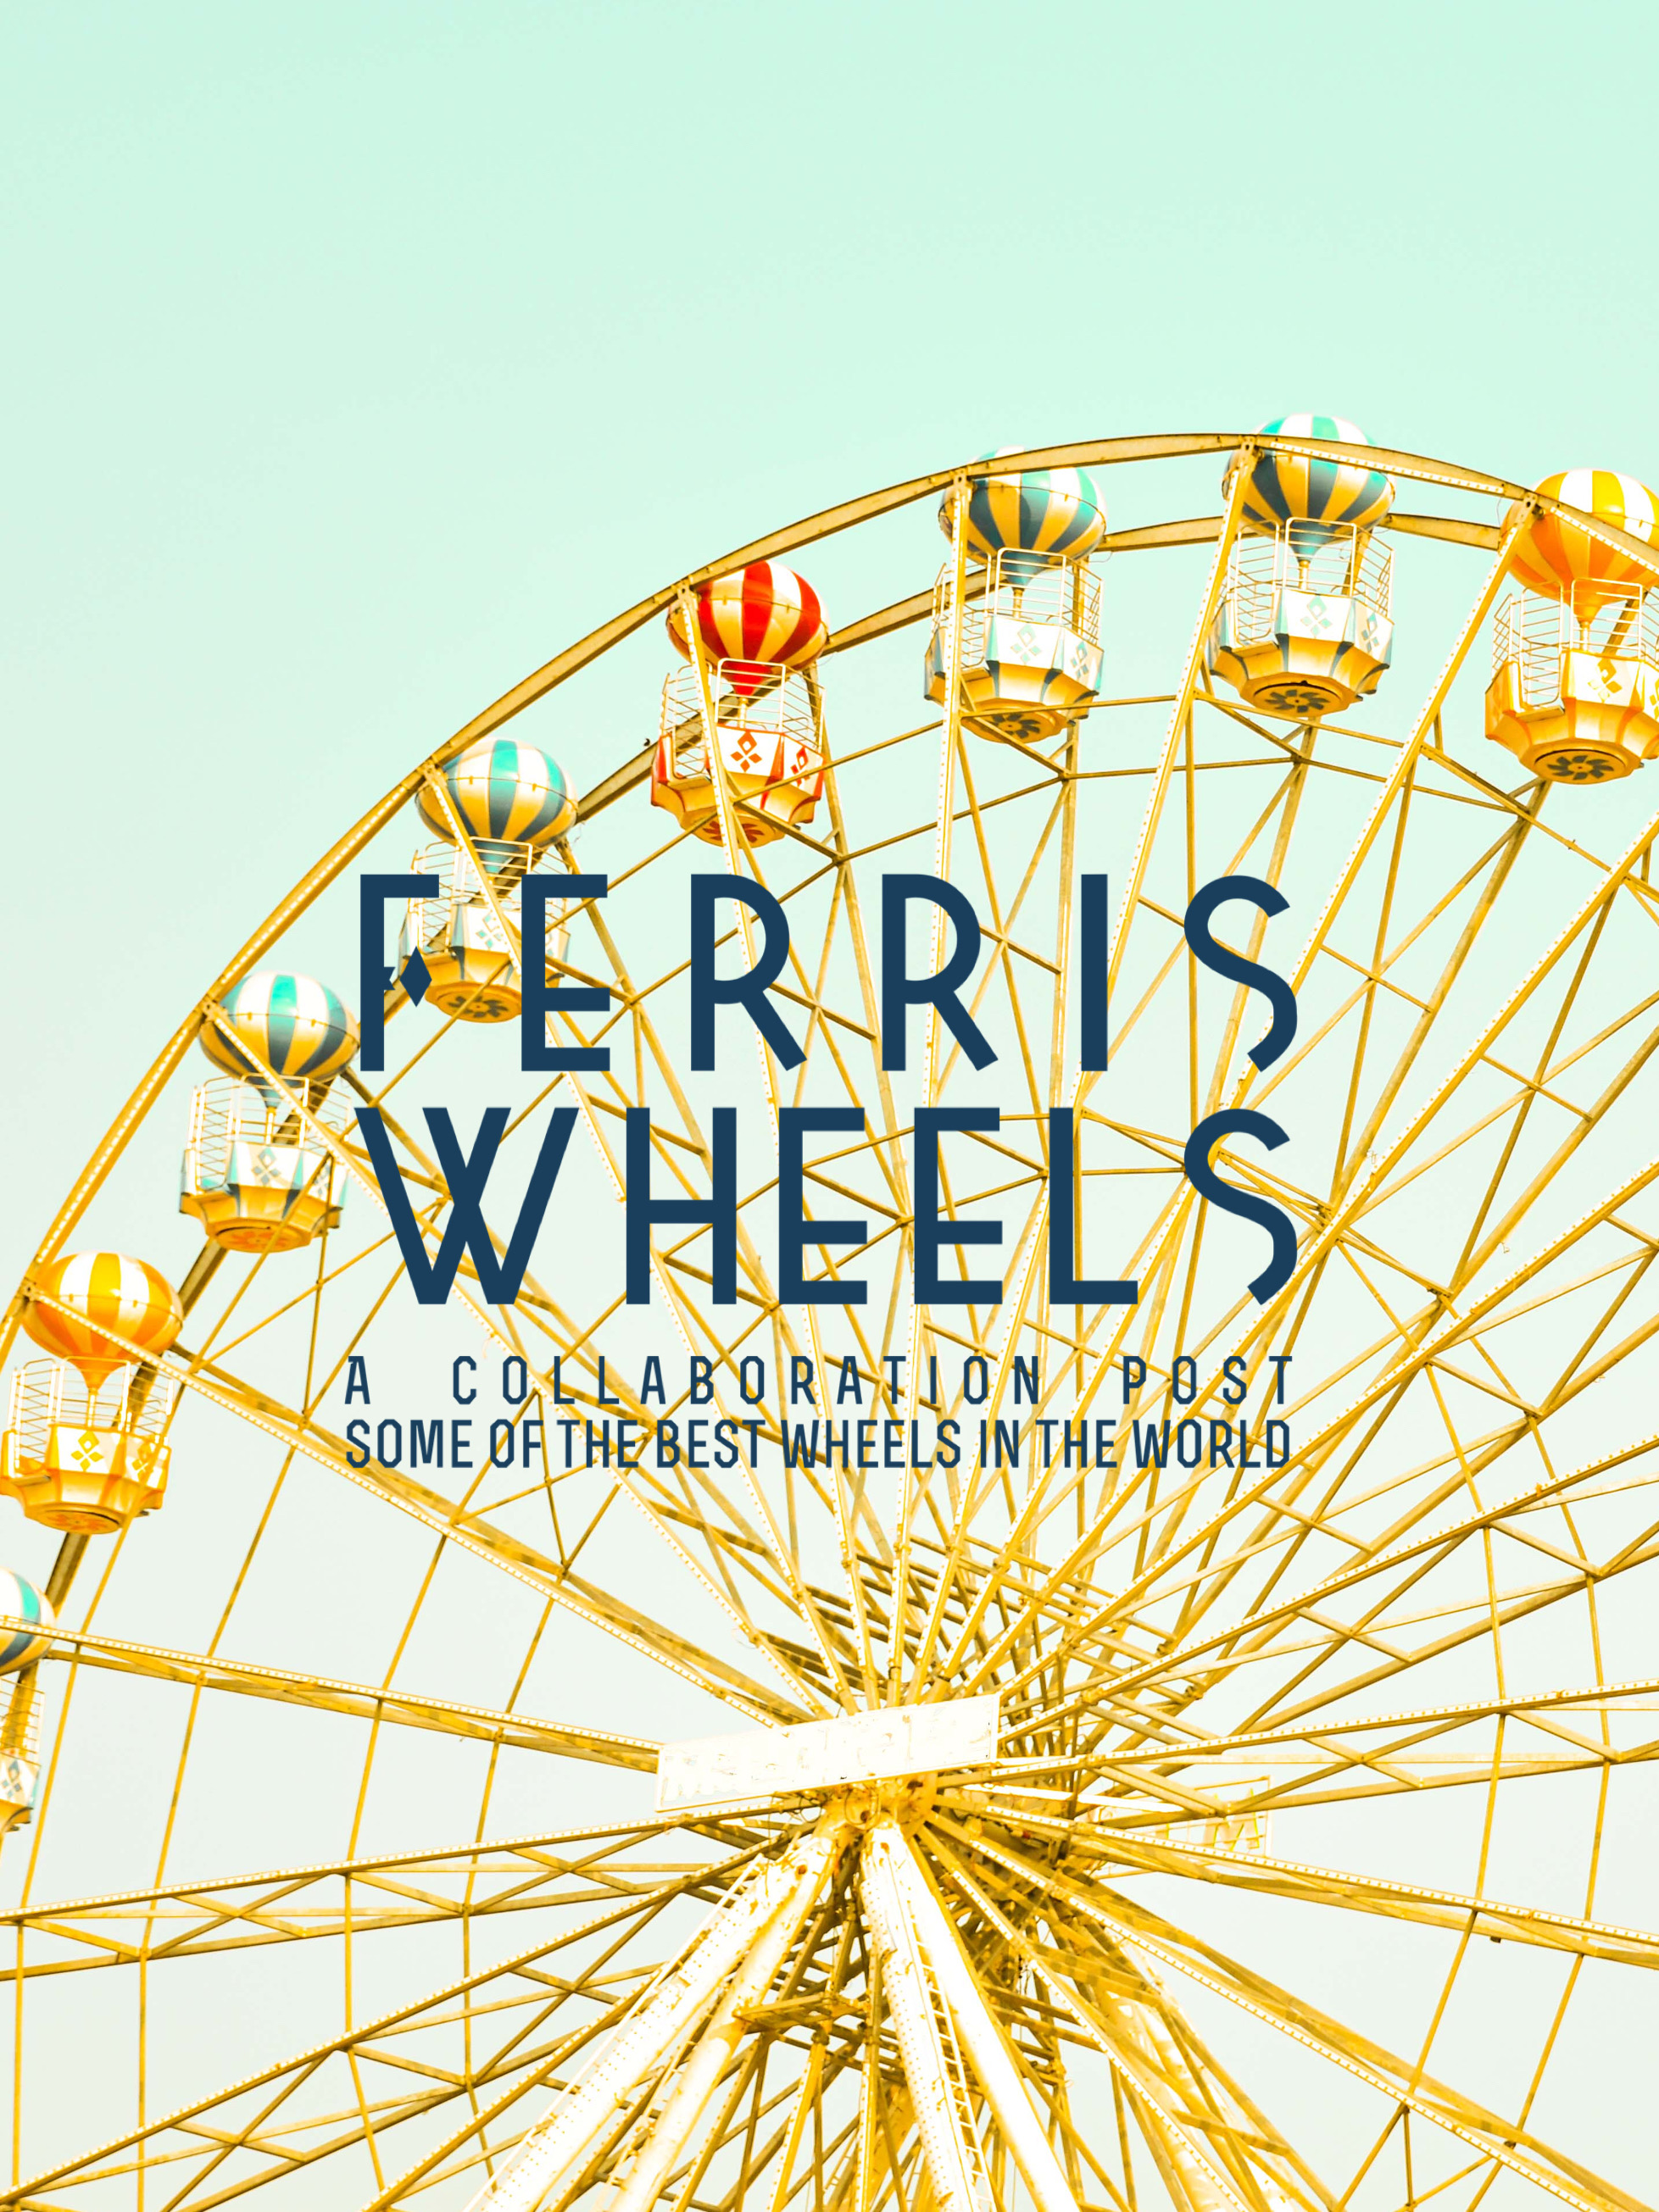 Ferris Wheels in the World